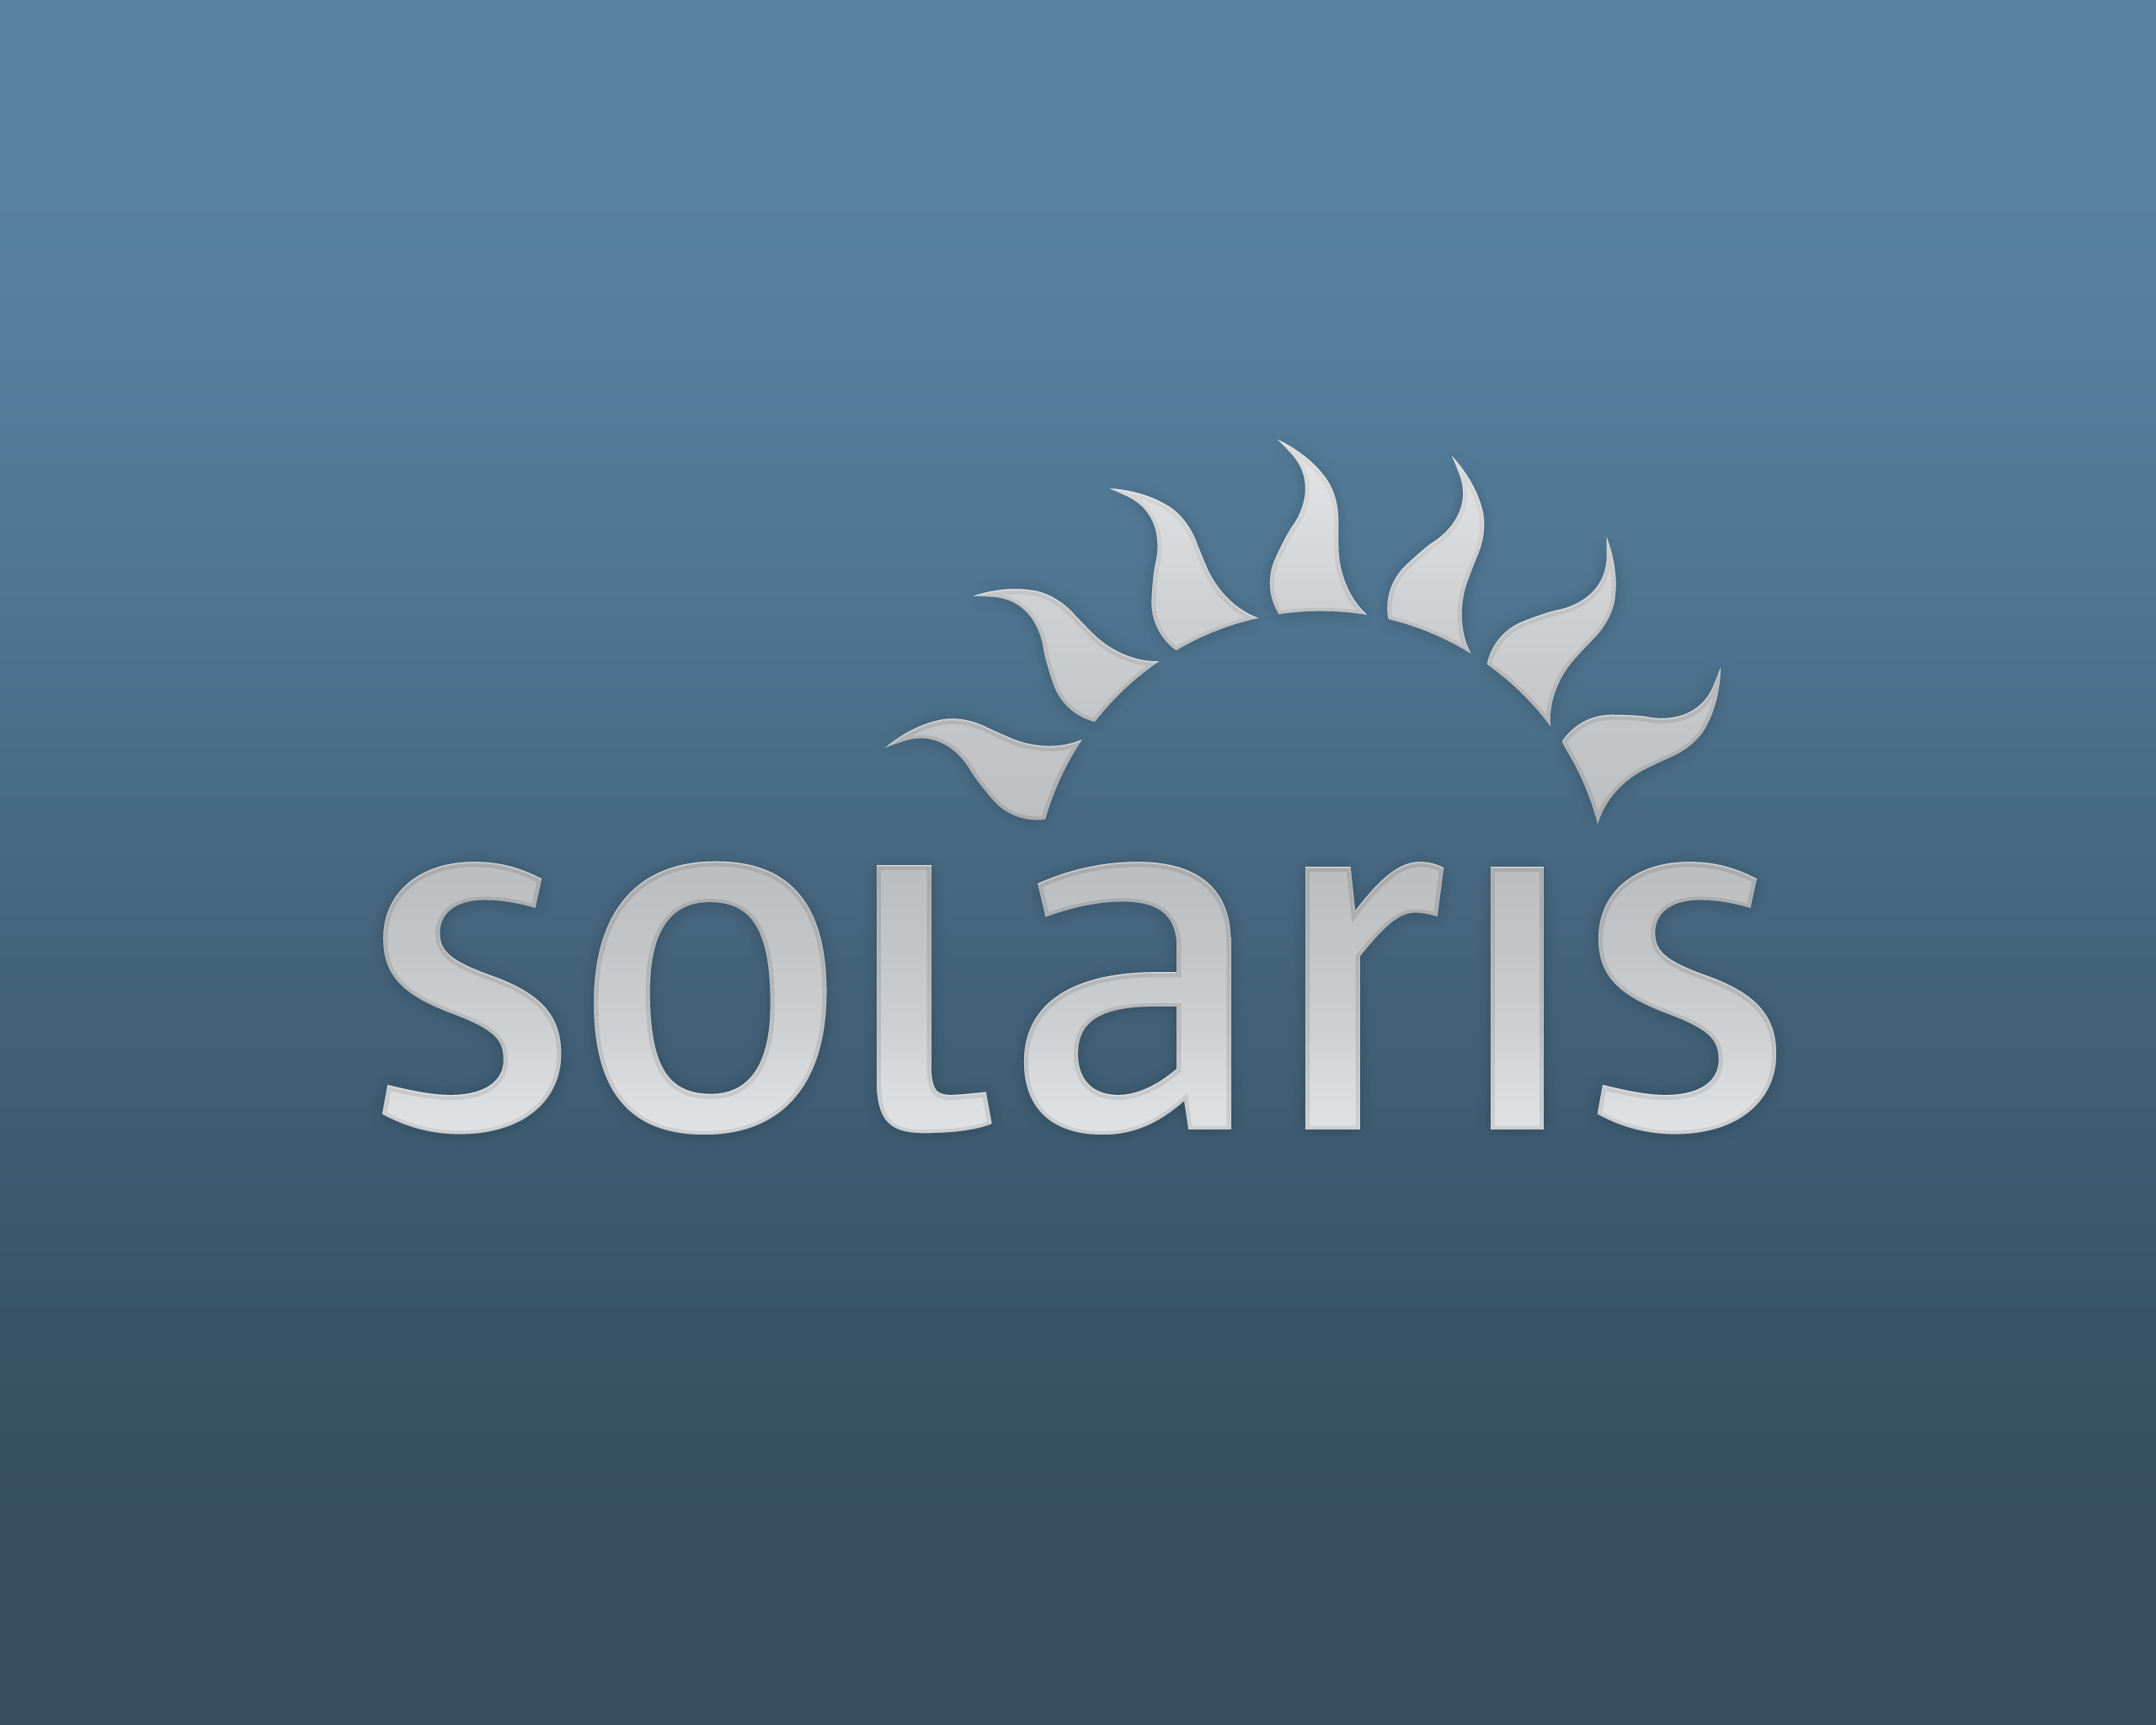 Solaris containers.